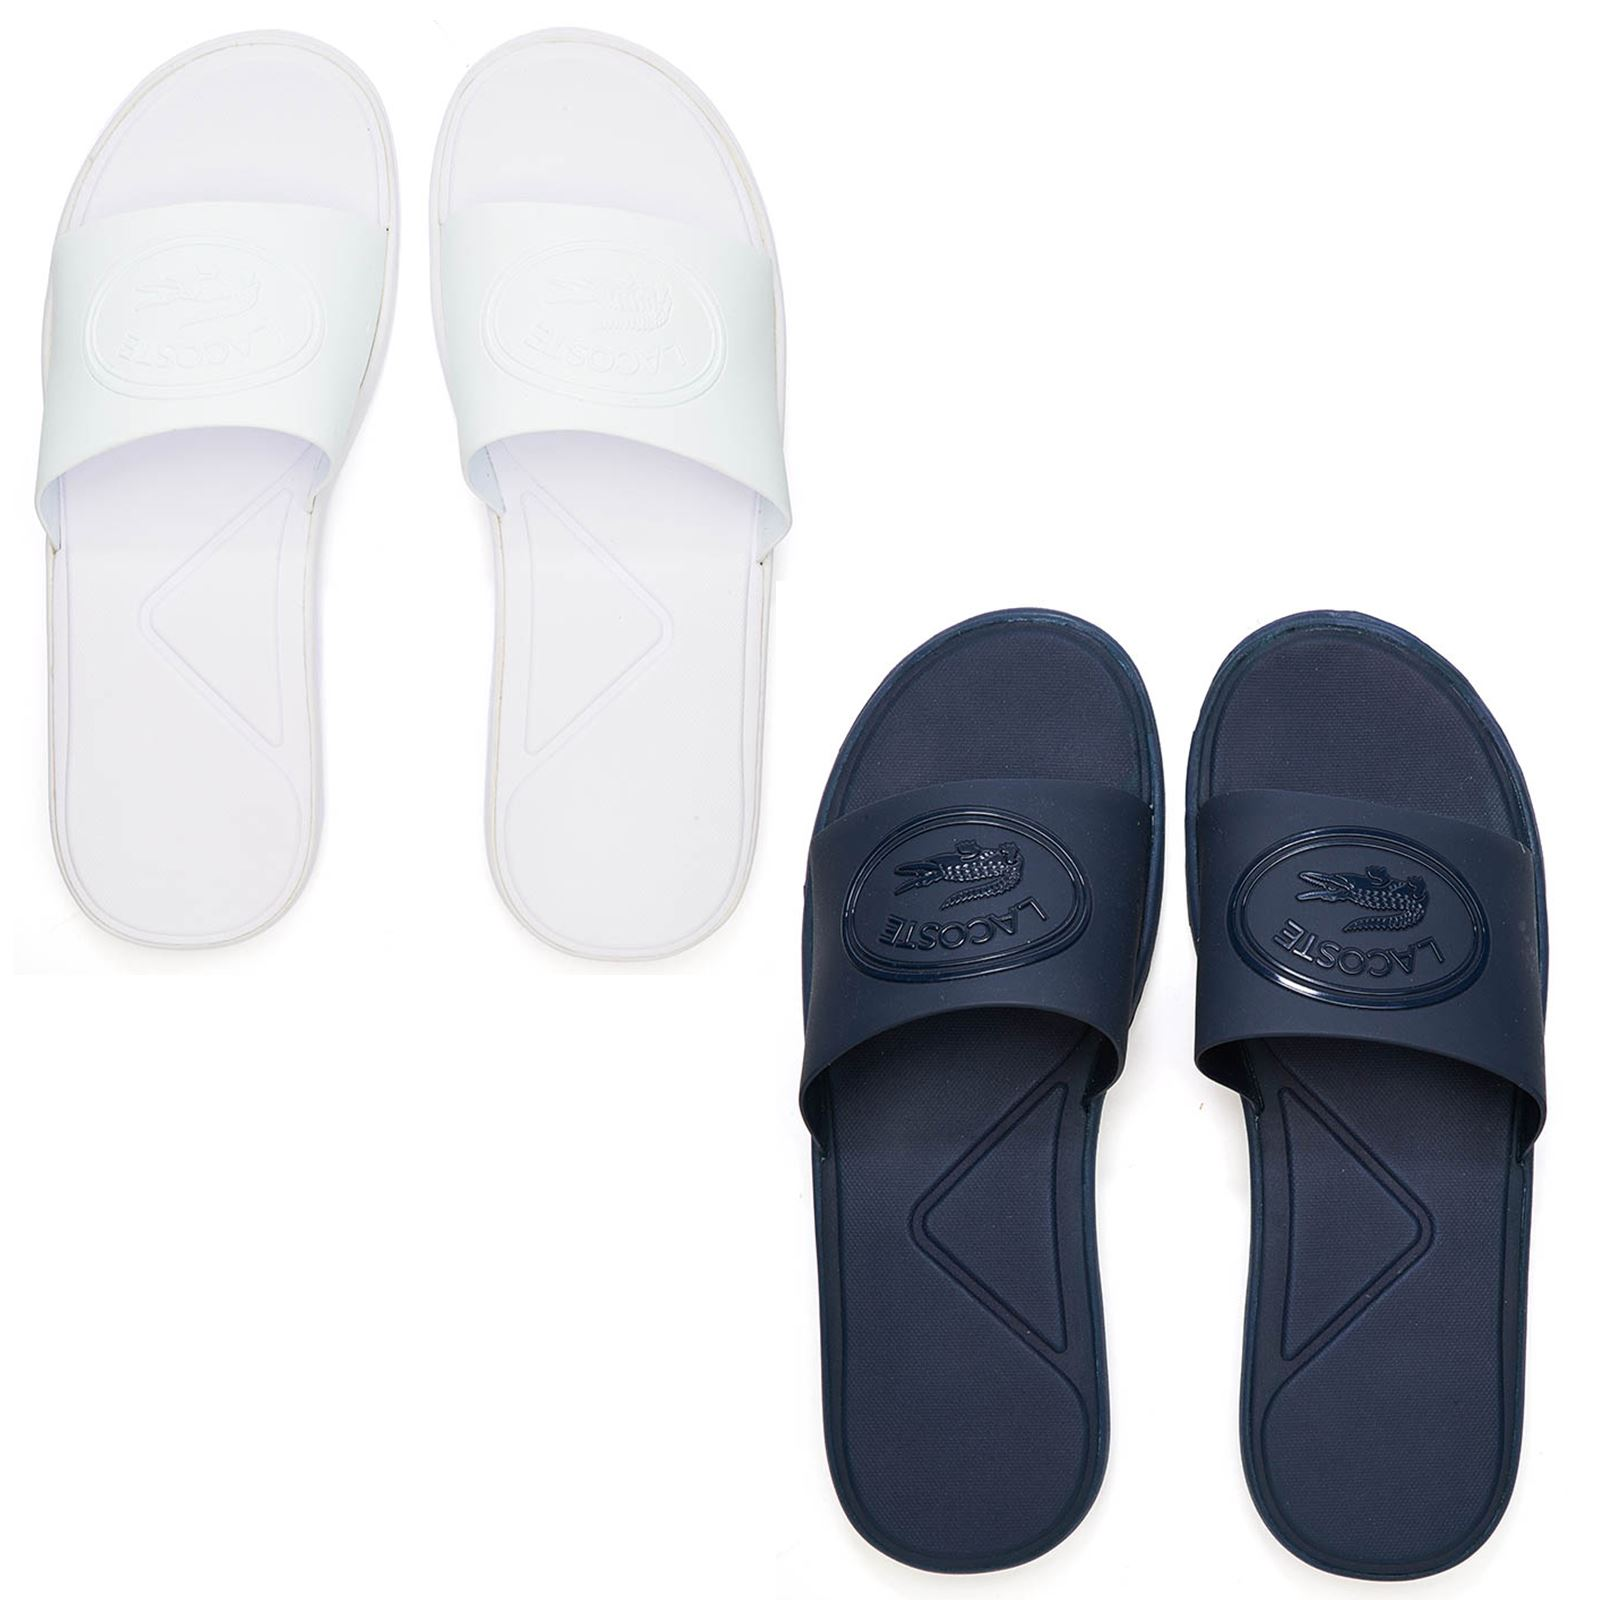 401fd2780e4e Lacoste L.30 318 1 CAM Slide Pool Beach Sandals in White   Navy Blue  736CAM0045